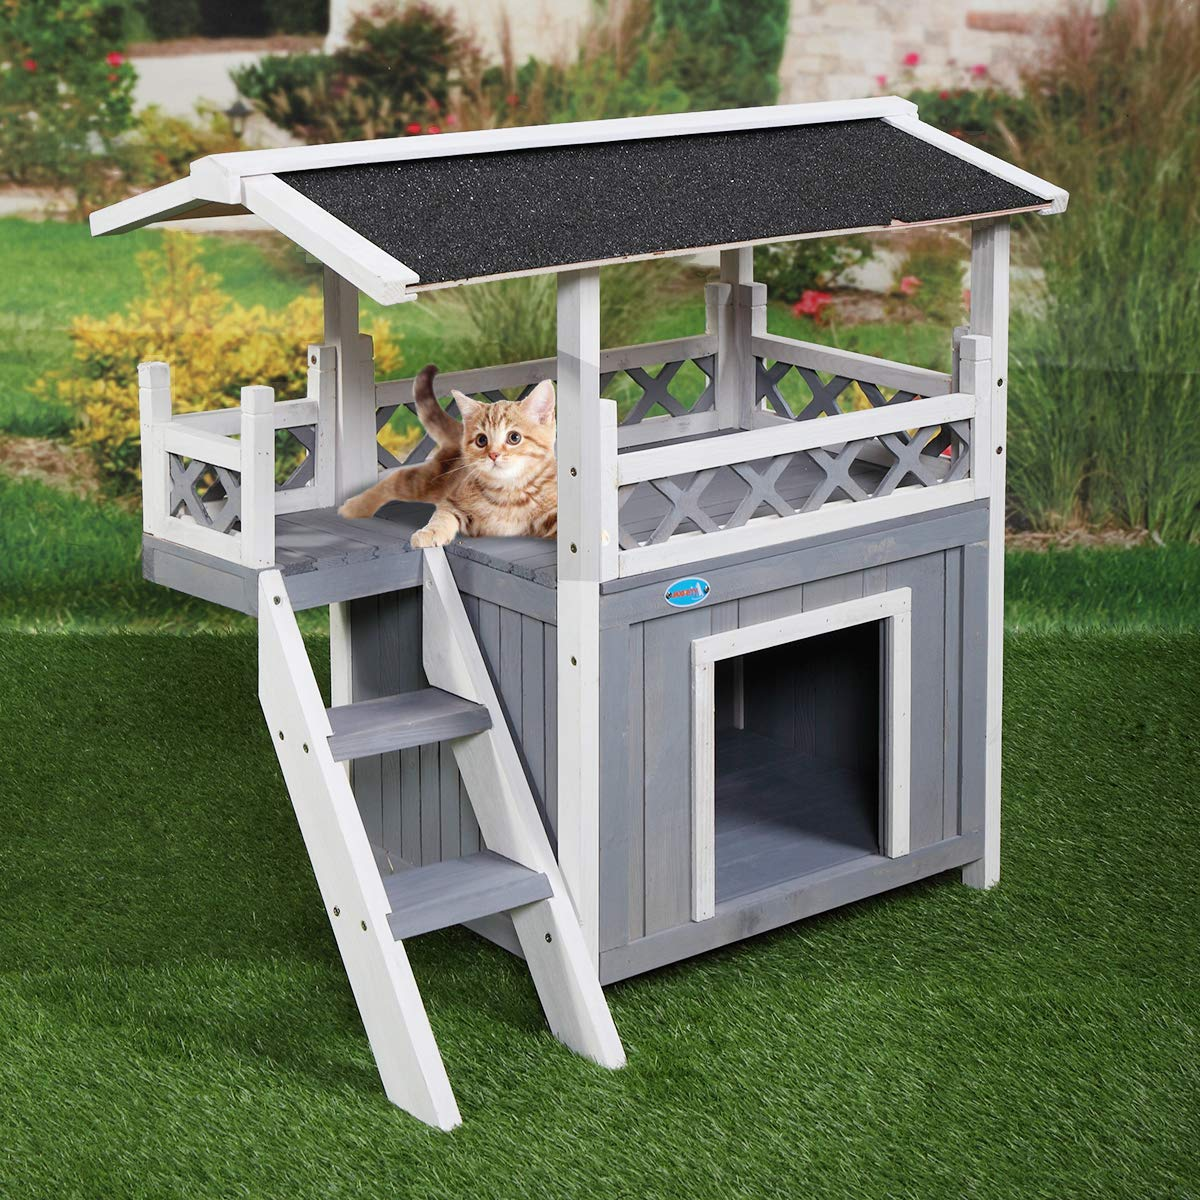 Tobbi Dog House Outdoor Shelter Roof Cat Condo Wood Steps Balcony Puppy Stairs Grey by Tobbi